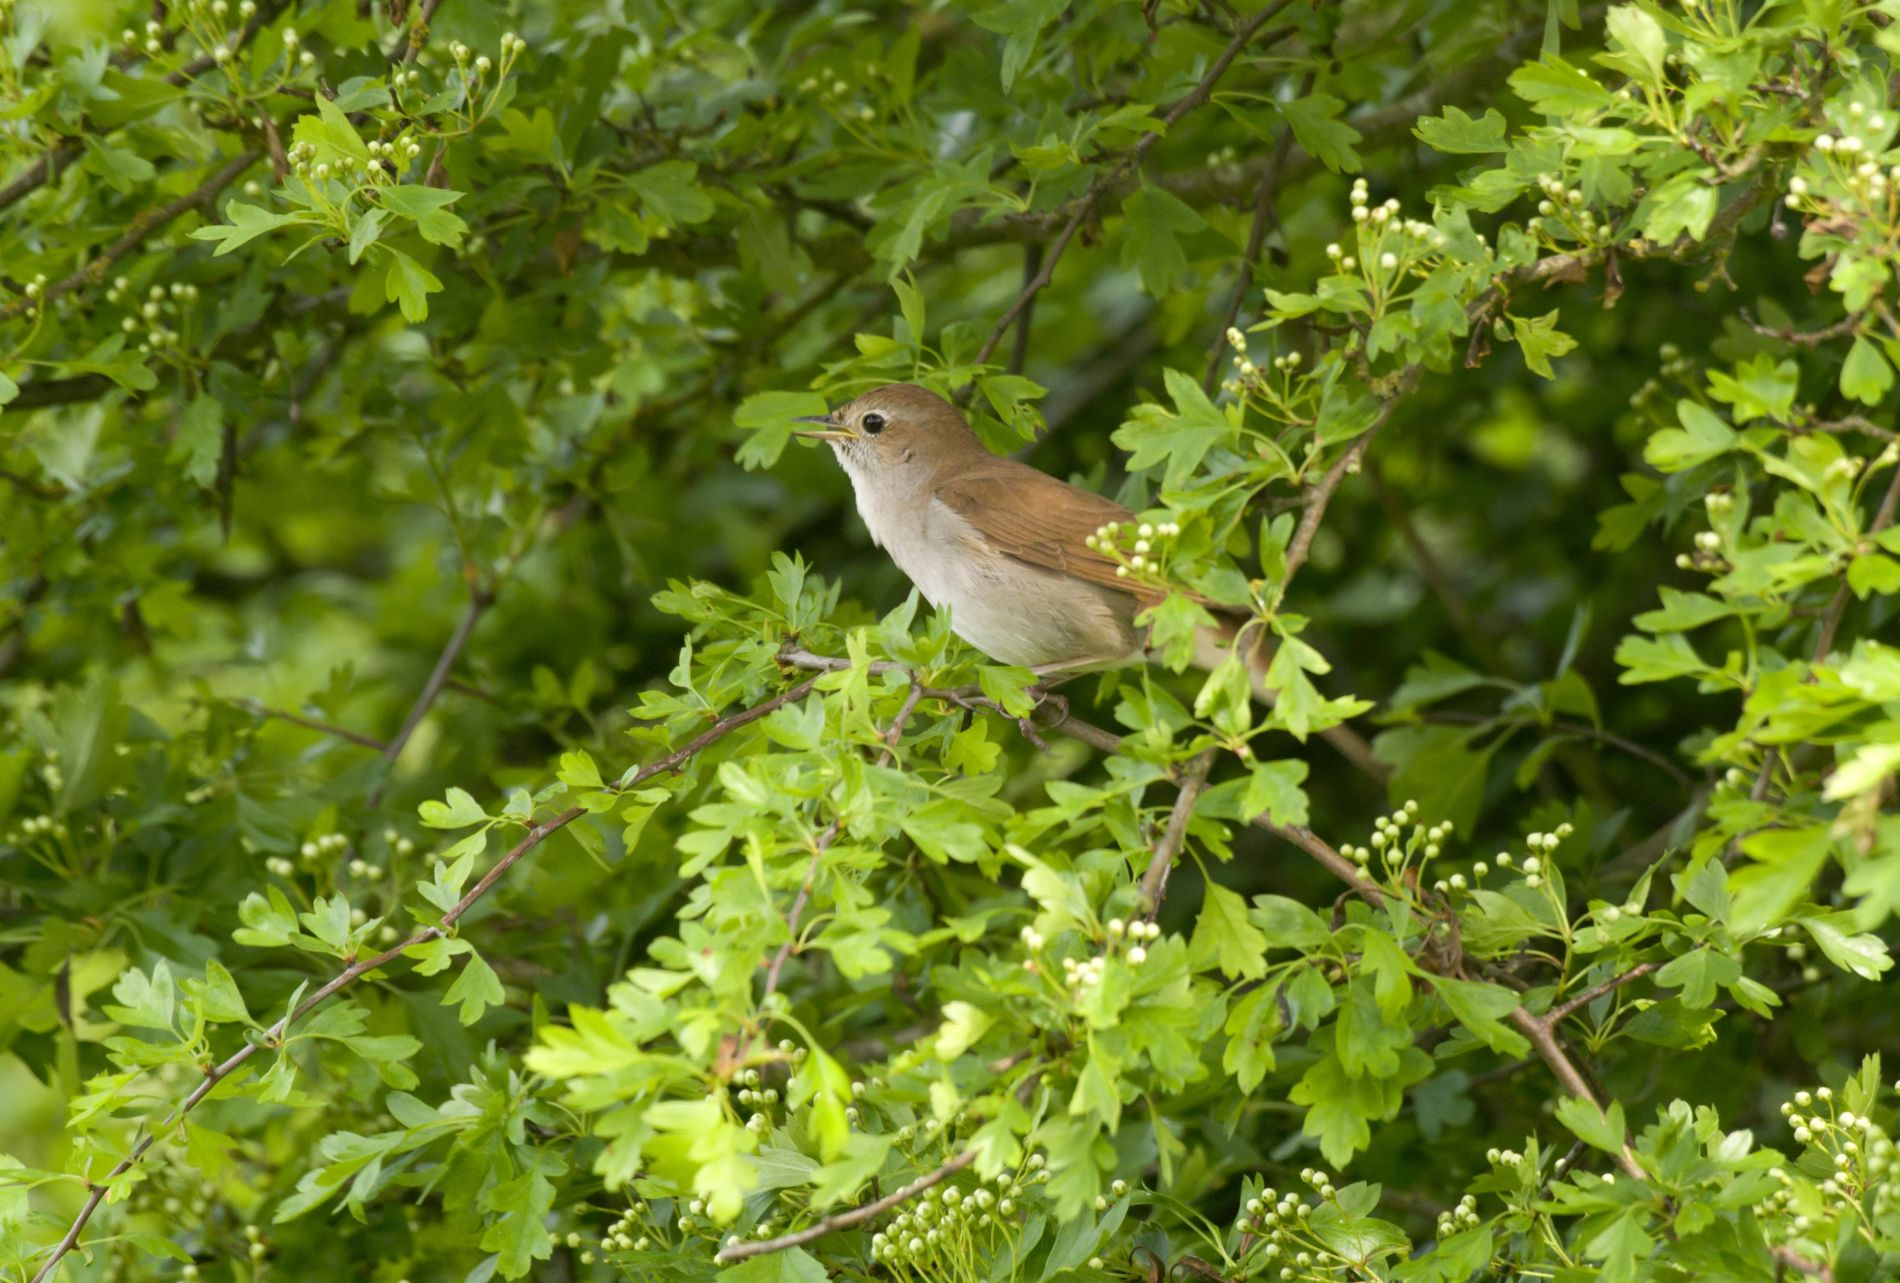 The Nightingale's song is the quintessential soundtrack to British summer evenings, but it is a song ...